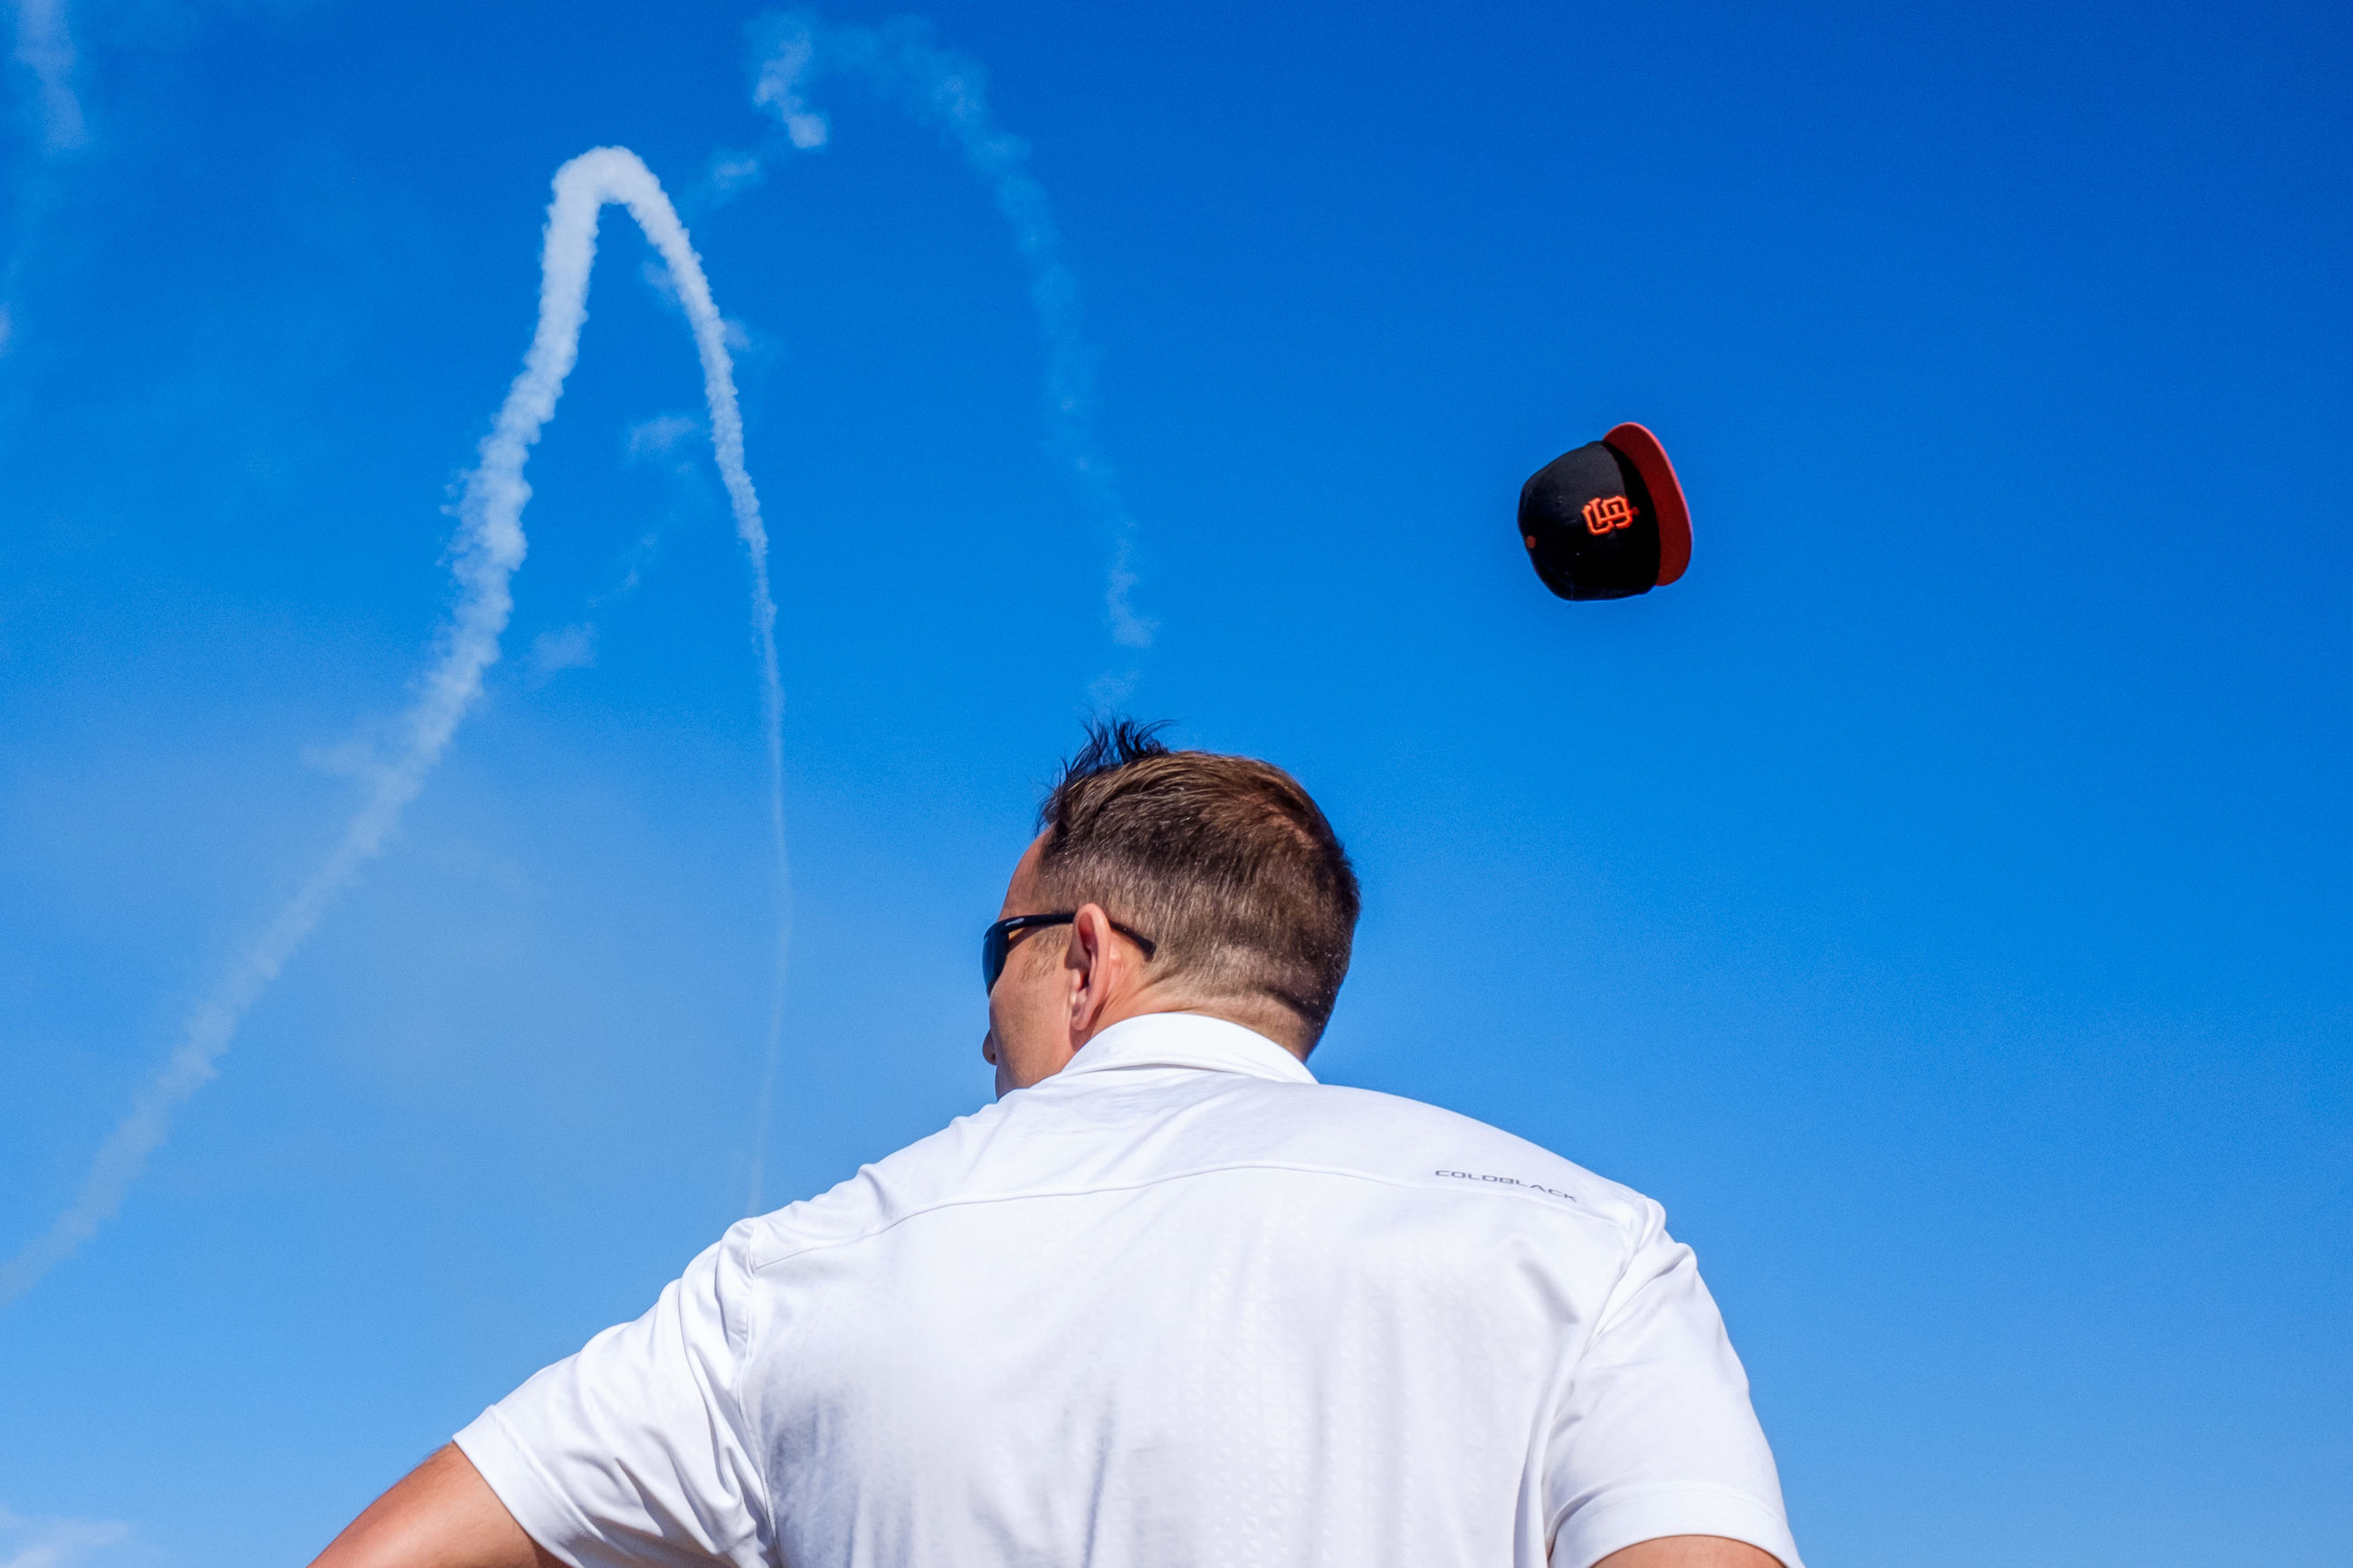 blue, flying, low angle view, sky, real people, mid-air, one person, day, motion, outdoors, leisure activity, men, nature, vapor trail